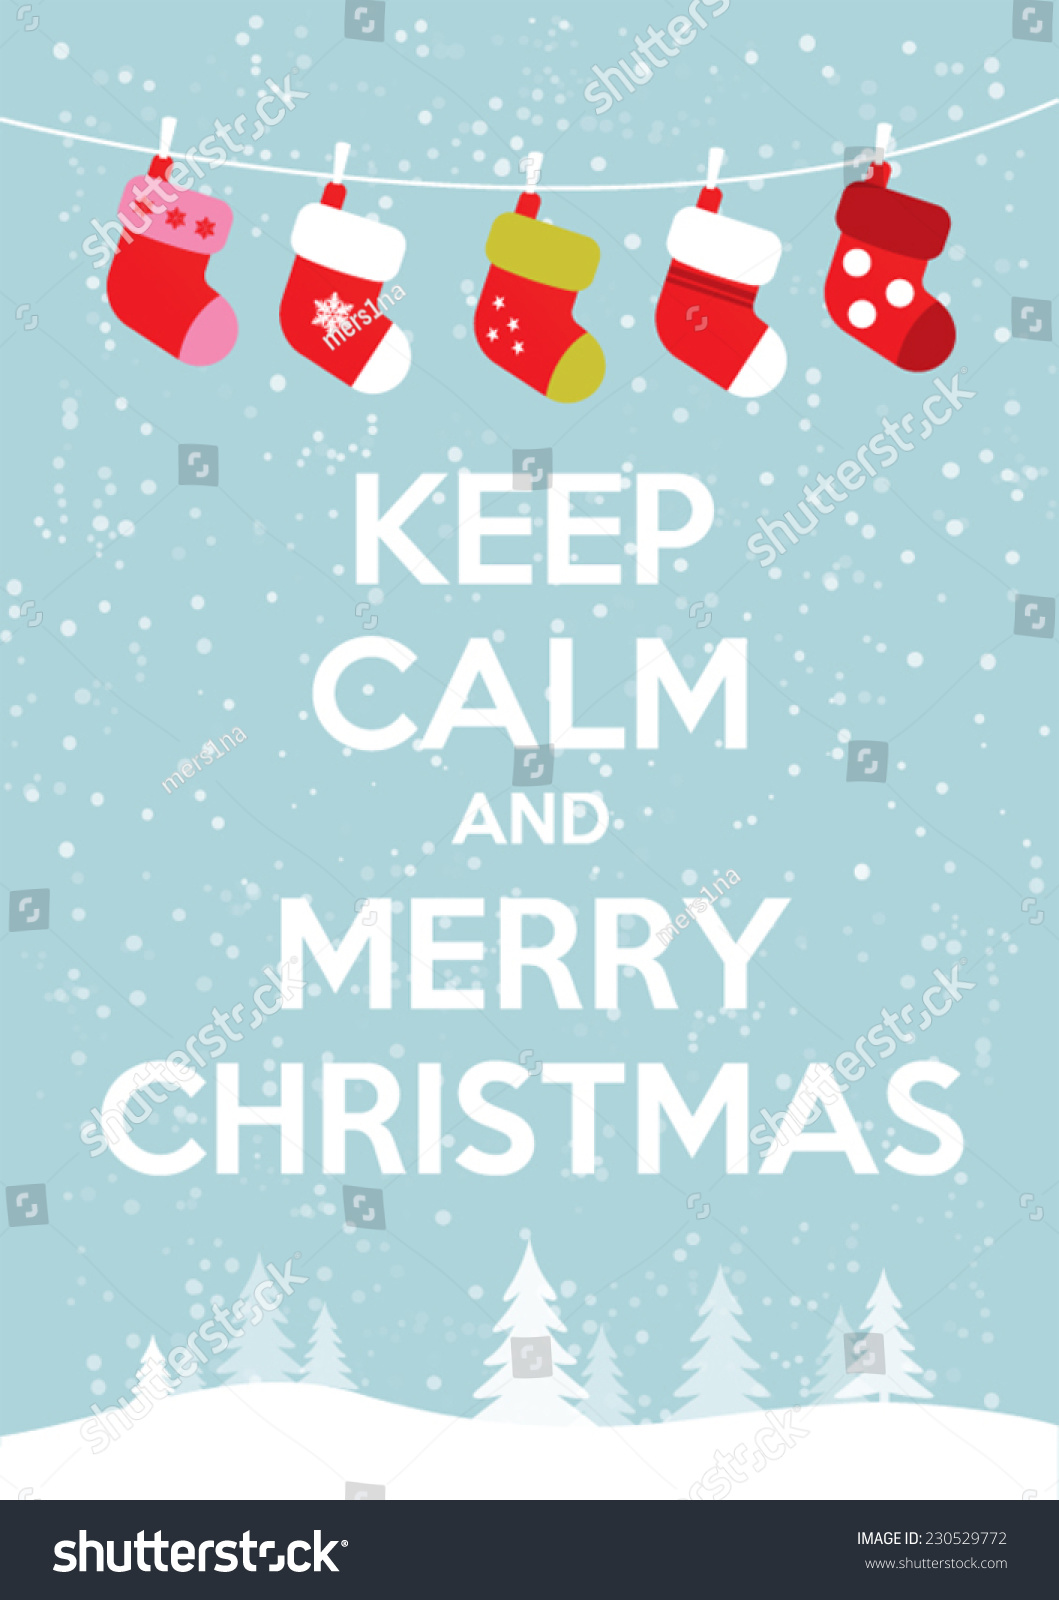 Keep Calm Merry Christmas Stock Vector (Royalty Free) 230529772 ...